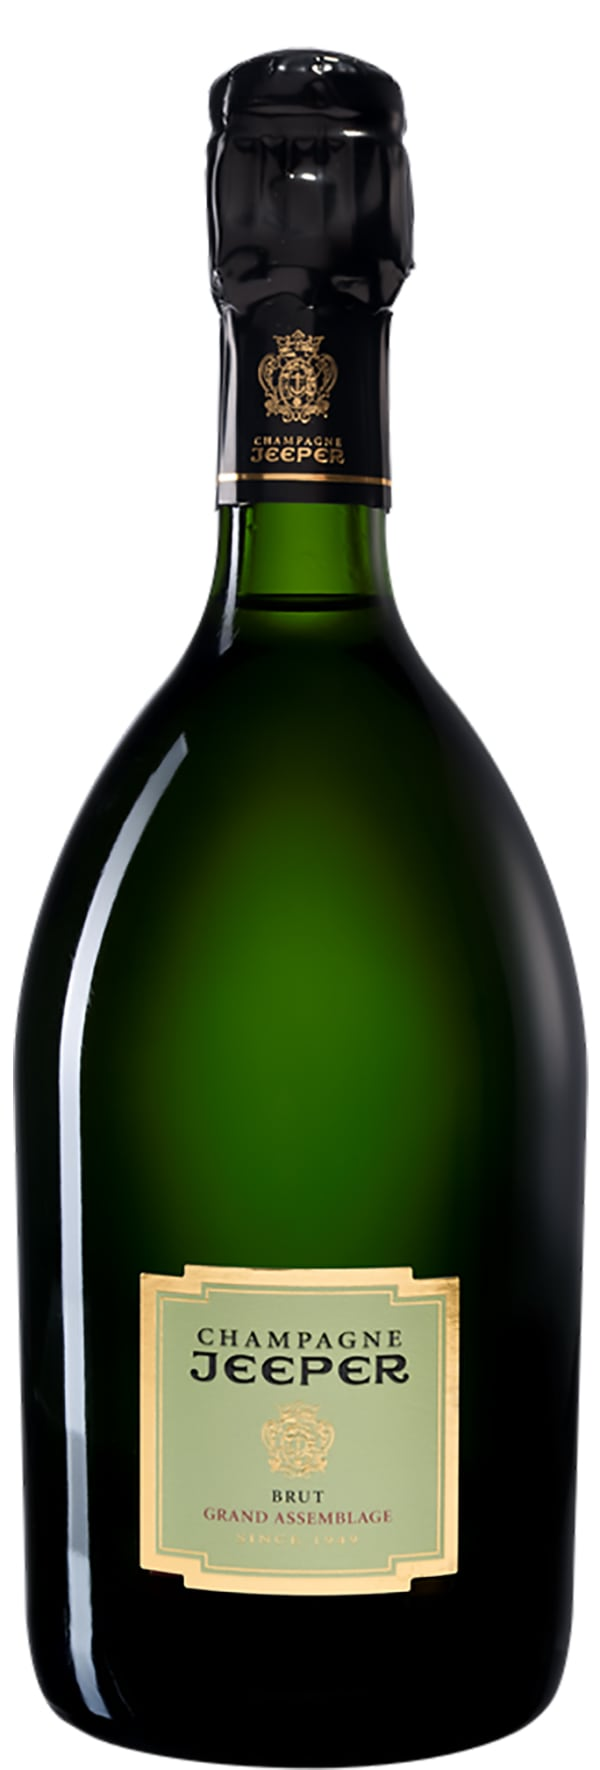 Jeeper Grand Assemblage Champagne Brut